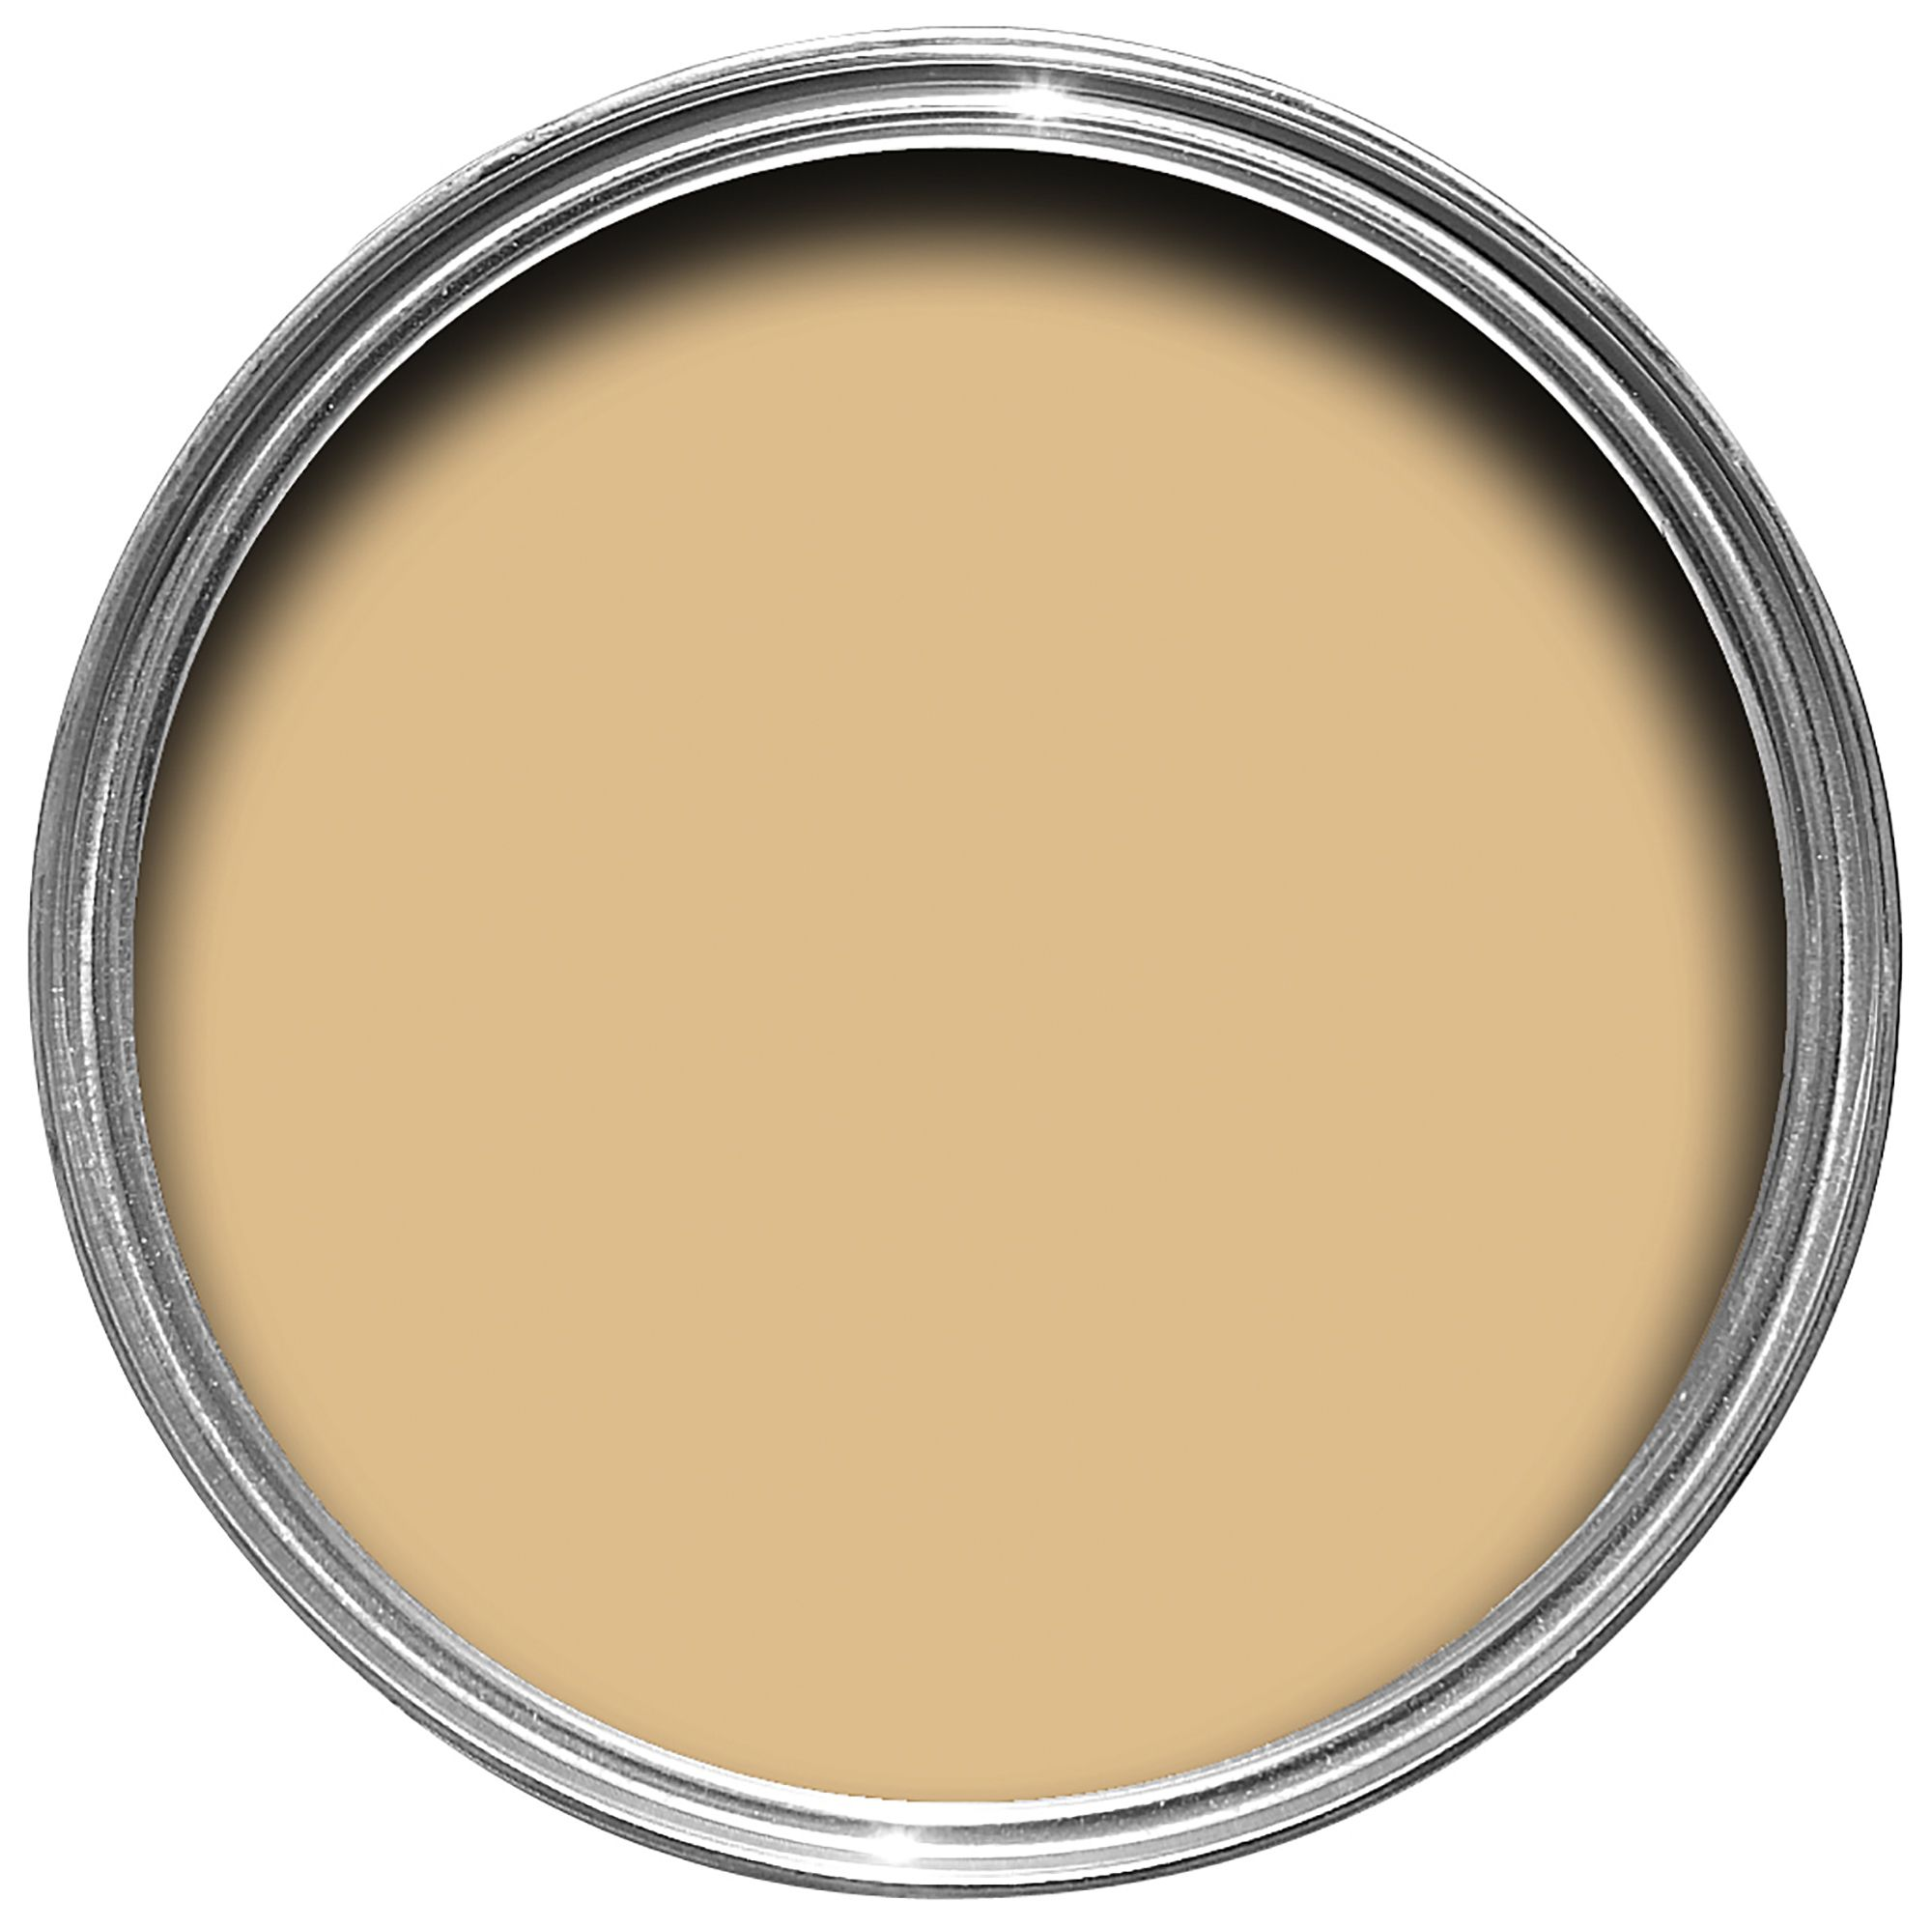 Colours Premium Peach Melba Matt Emulsion Paint 2 5l Departments Diy At B Amp Q